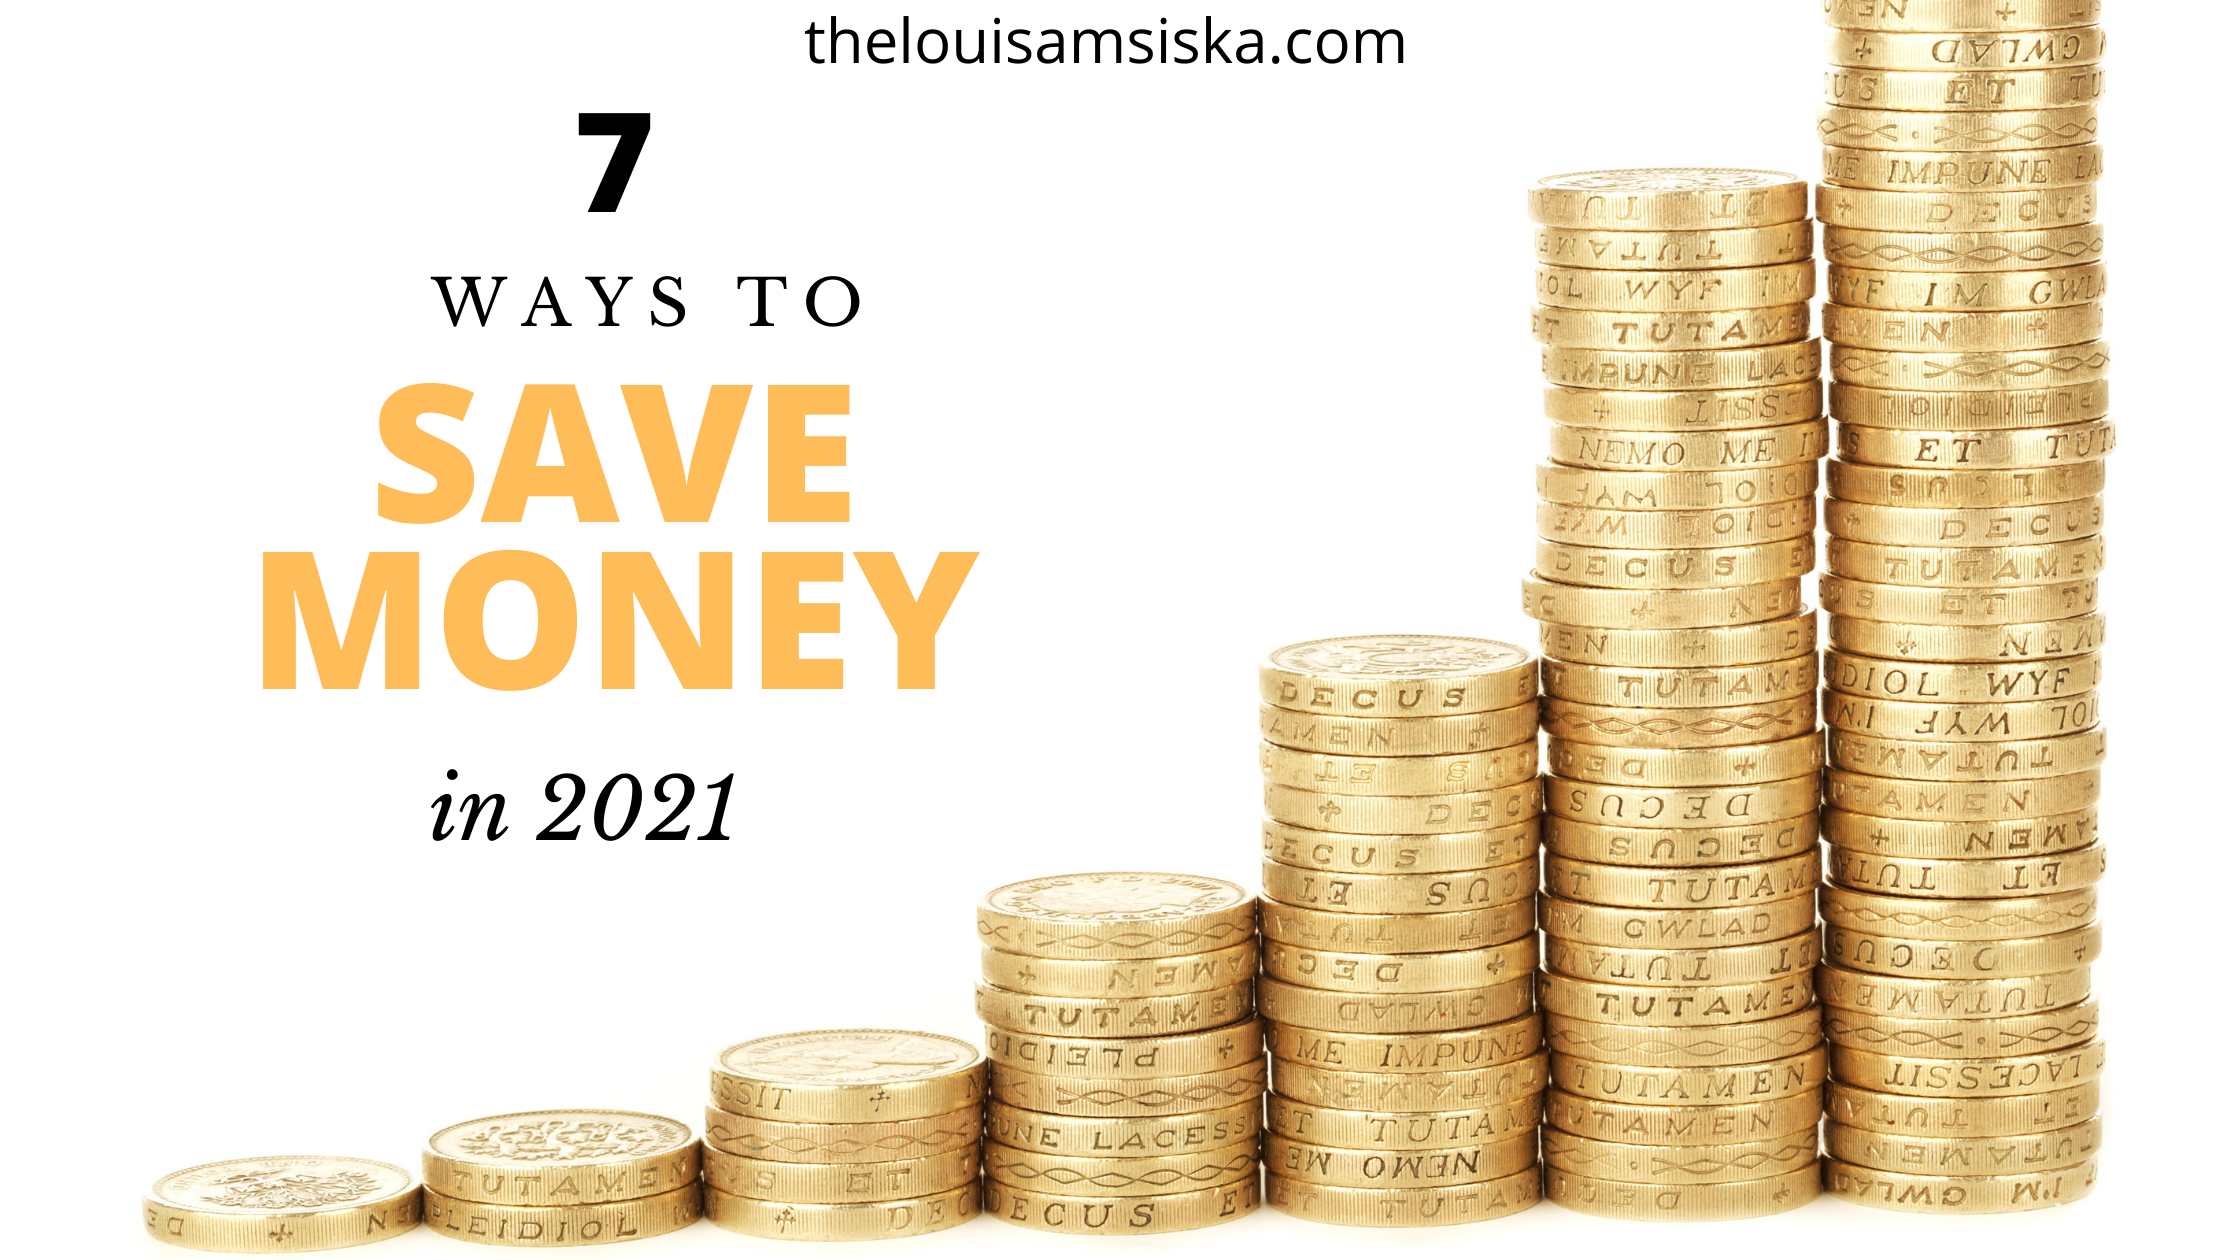 The picture depicts 7 ways to save money in 2021. It has gold coins and words in black and mustard